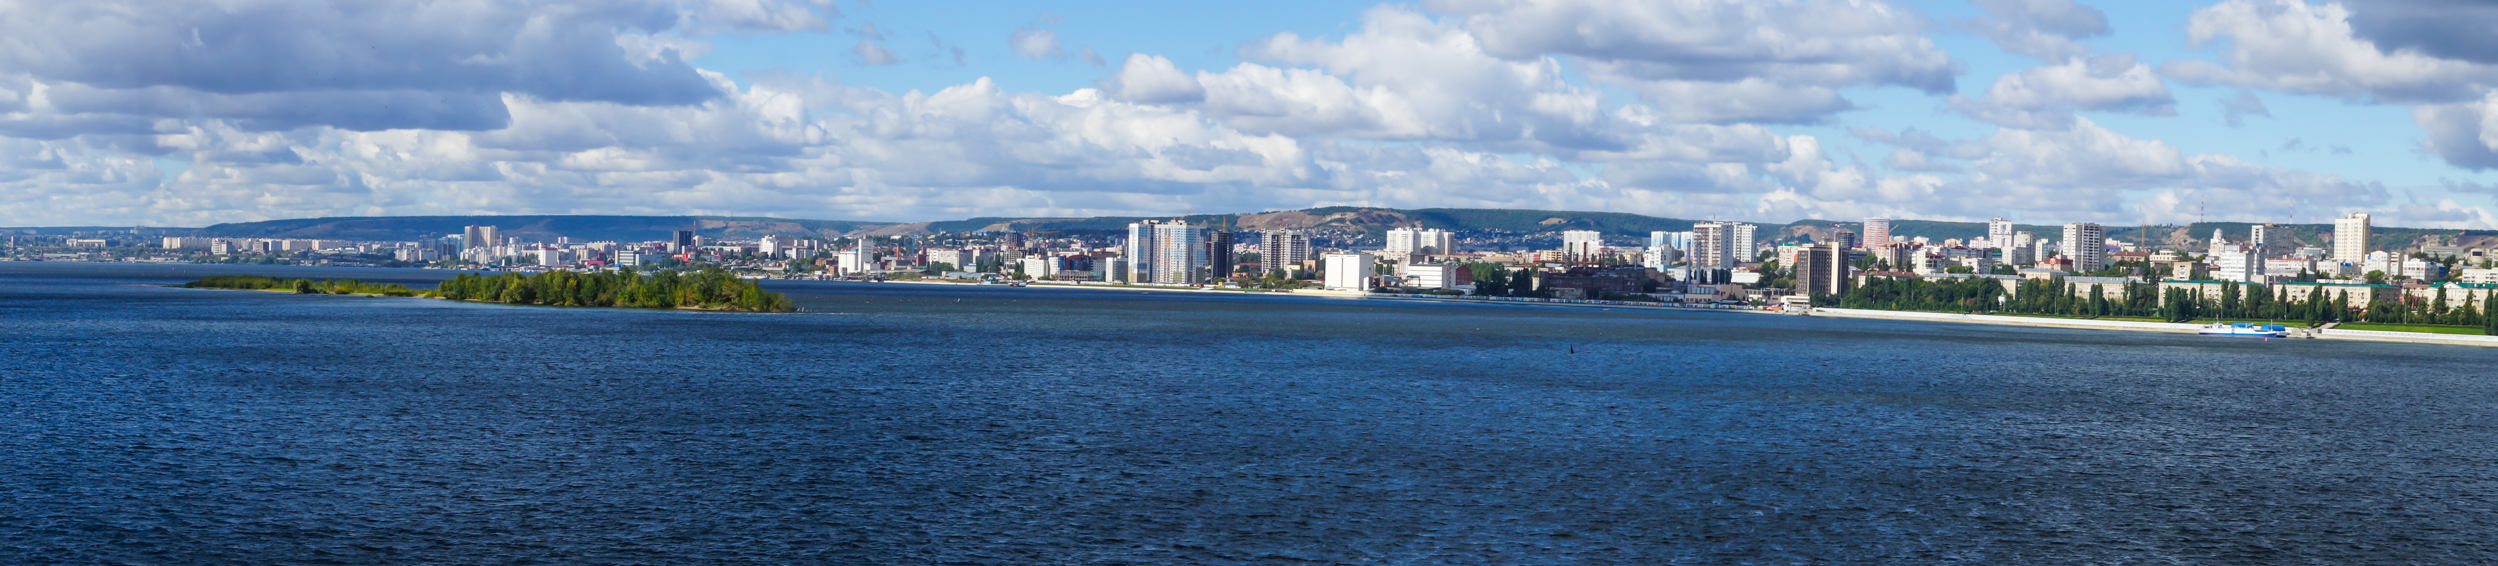 Saratov 2016-views of the city from the Saratov bridge. People who have seen the city from the bridge on a sunny day, known as the White City of Saratov.